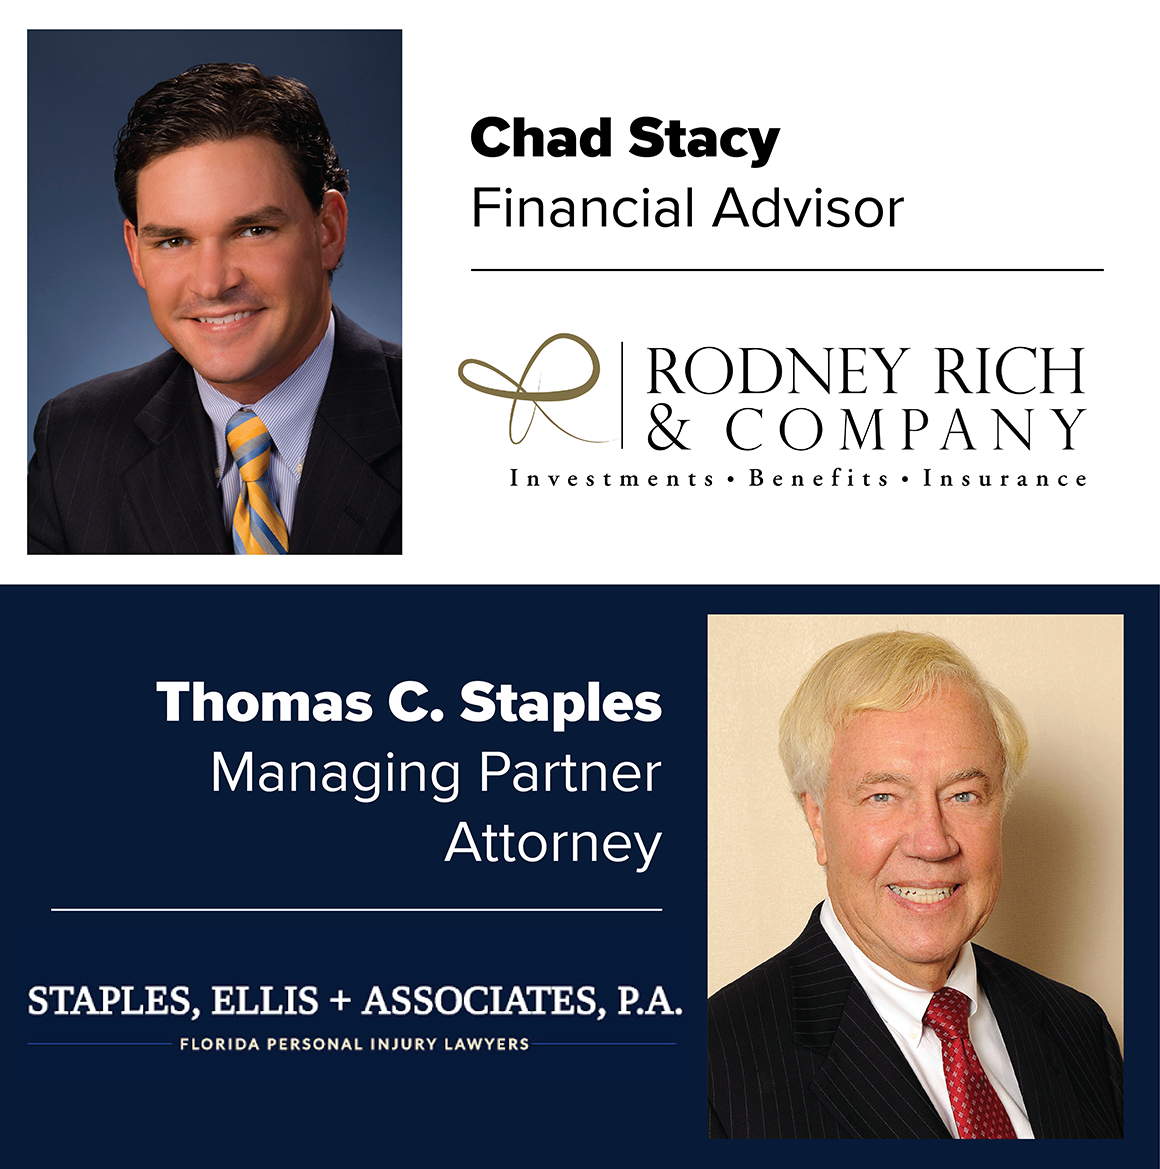 Guest Speakers: Chad Stacy From Rodney Rich & Co and Thomas M. Staples from Staples, Ellis & Assoc.